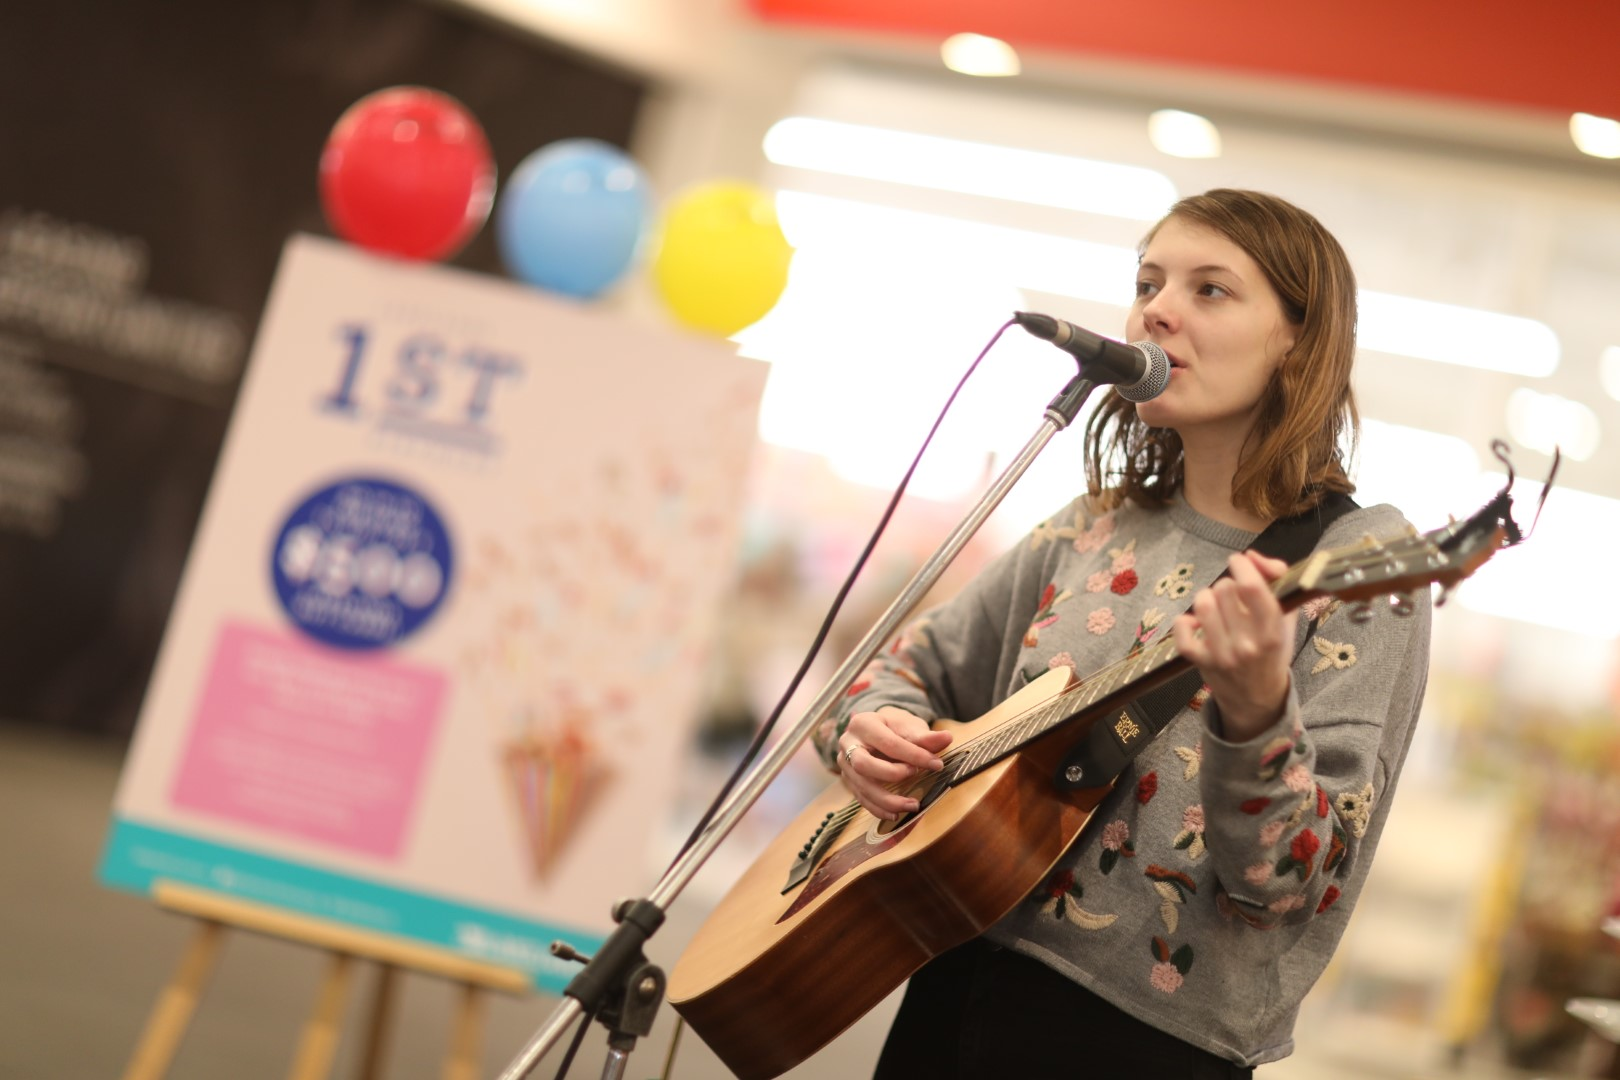 Young lady performing inside a shopping centre.